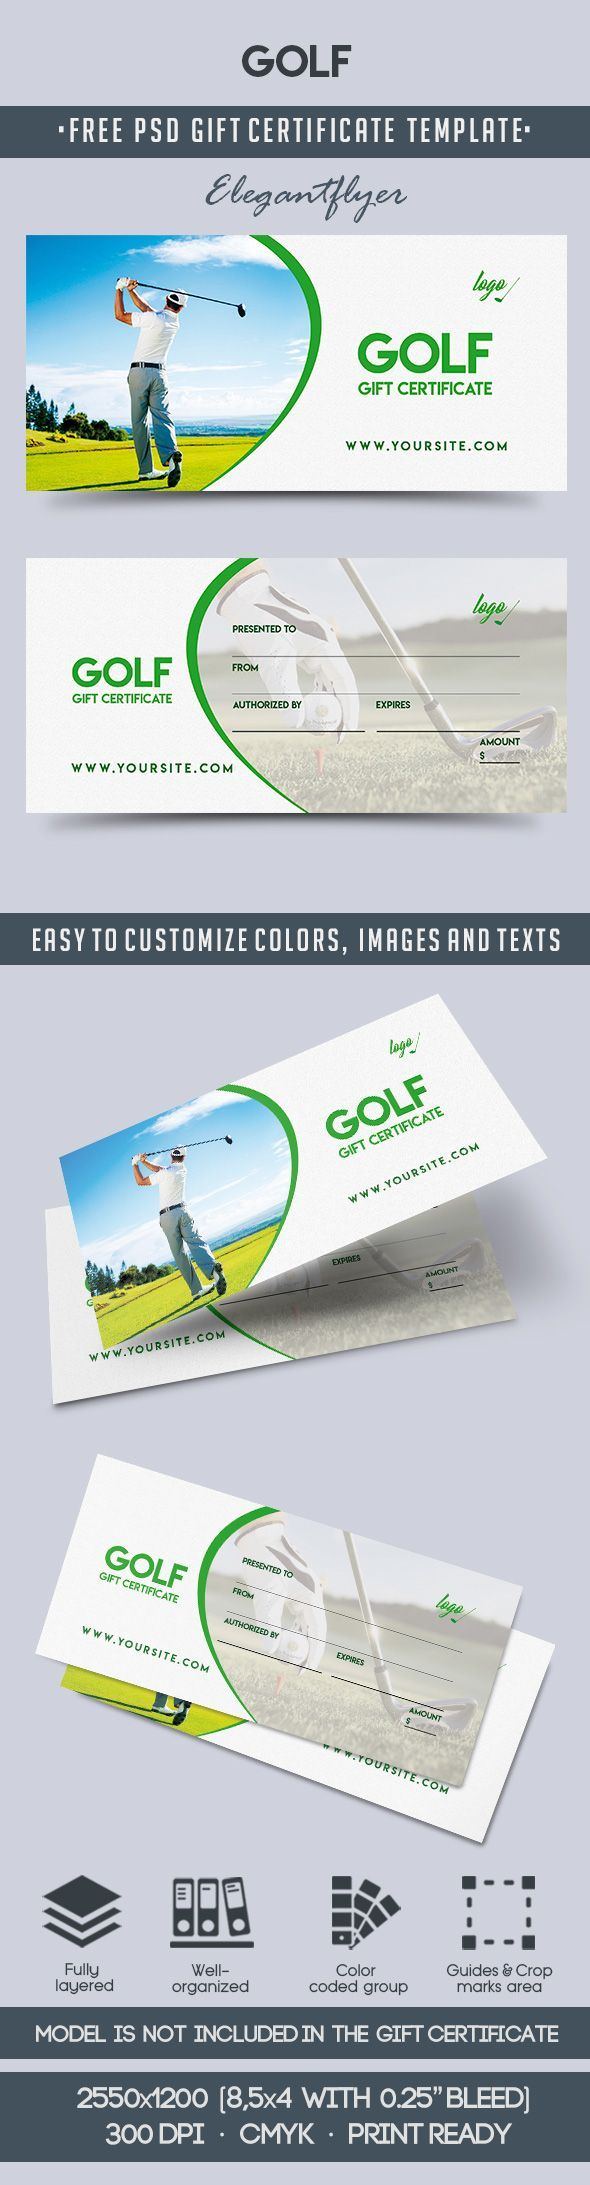 Golf Club Gift Vouchers Free Gift Certificate Template Gift